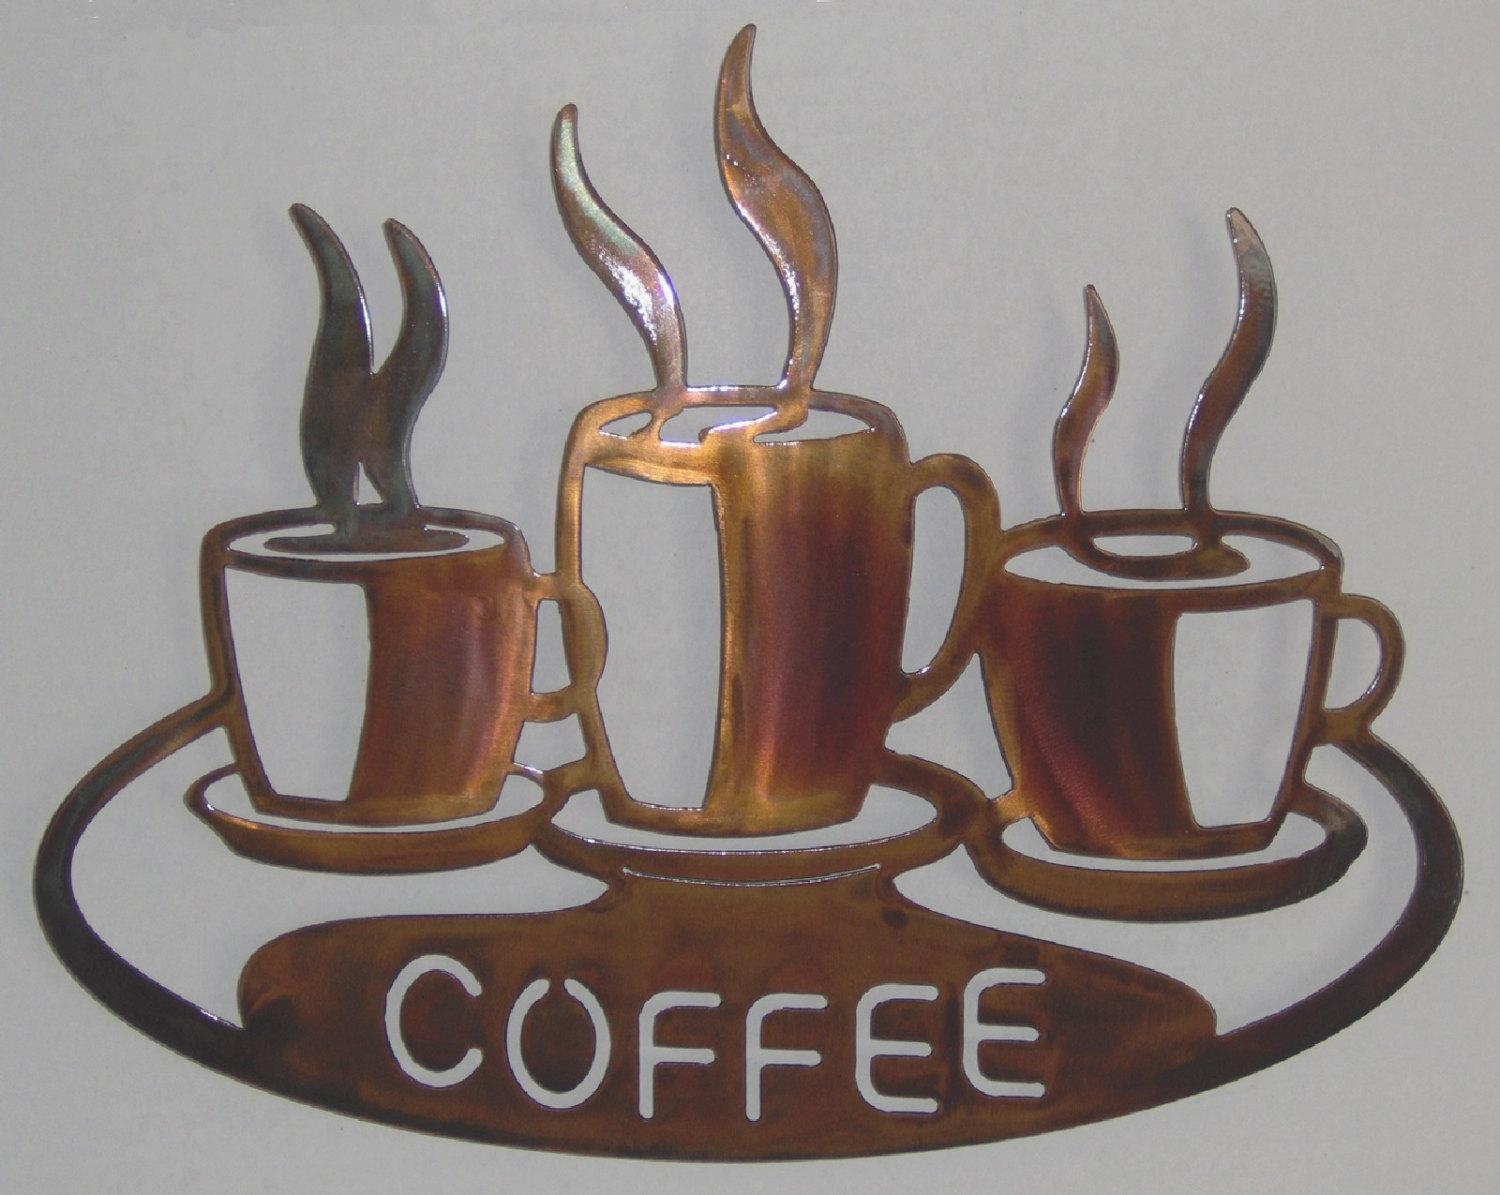 Coffee Cups On Platter Metal Wall Art Within Metal Coffee Cup Wall Art (Image 7 of 20)